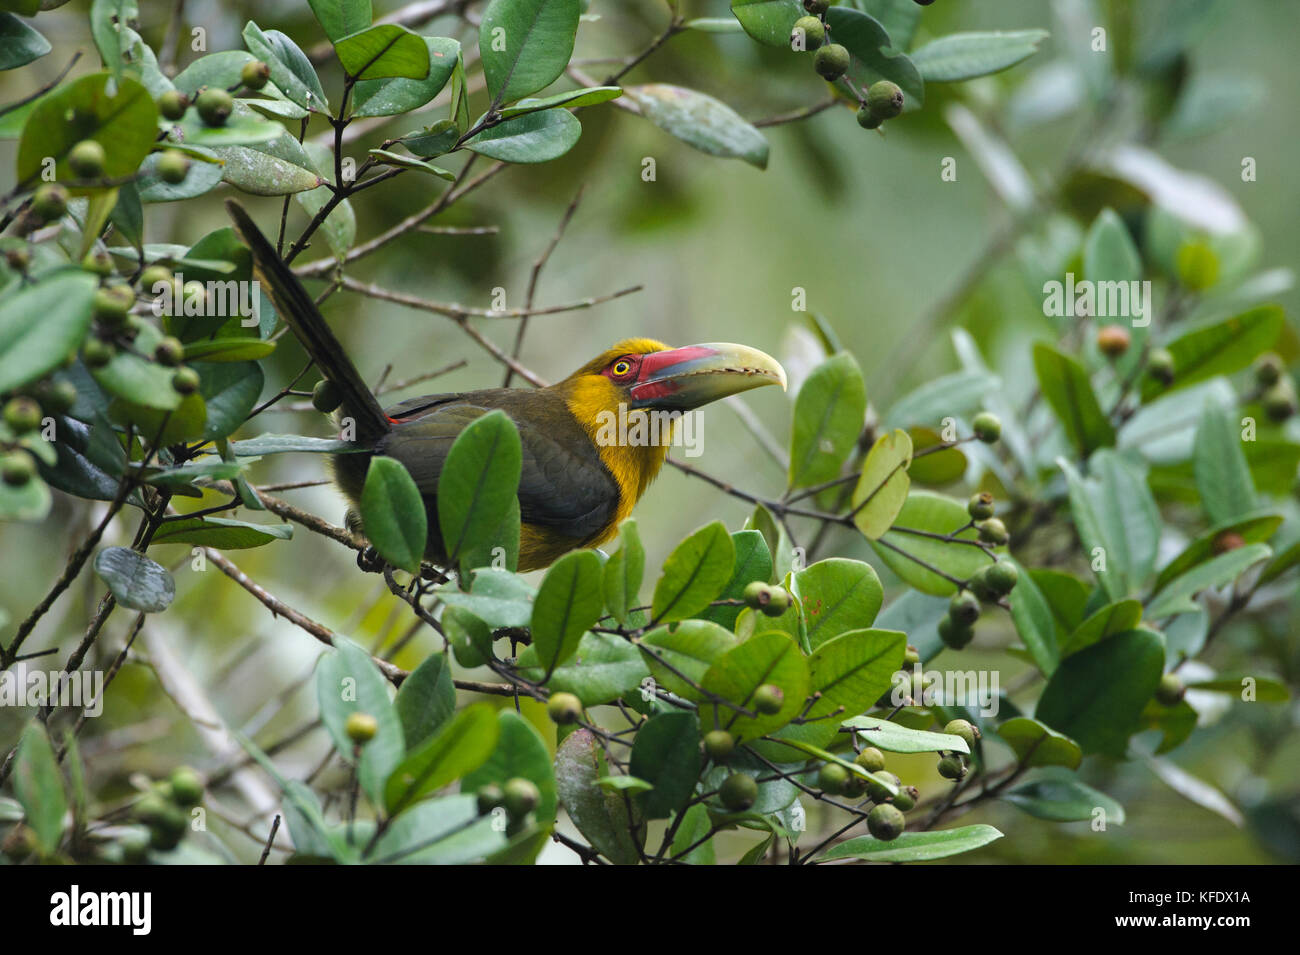 A Saffron Toucanet from the Atlantic Rainforest eating native fruits in the canopy - Stock Image